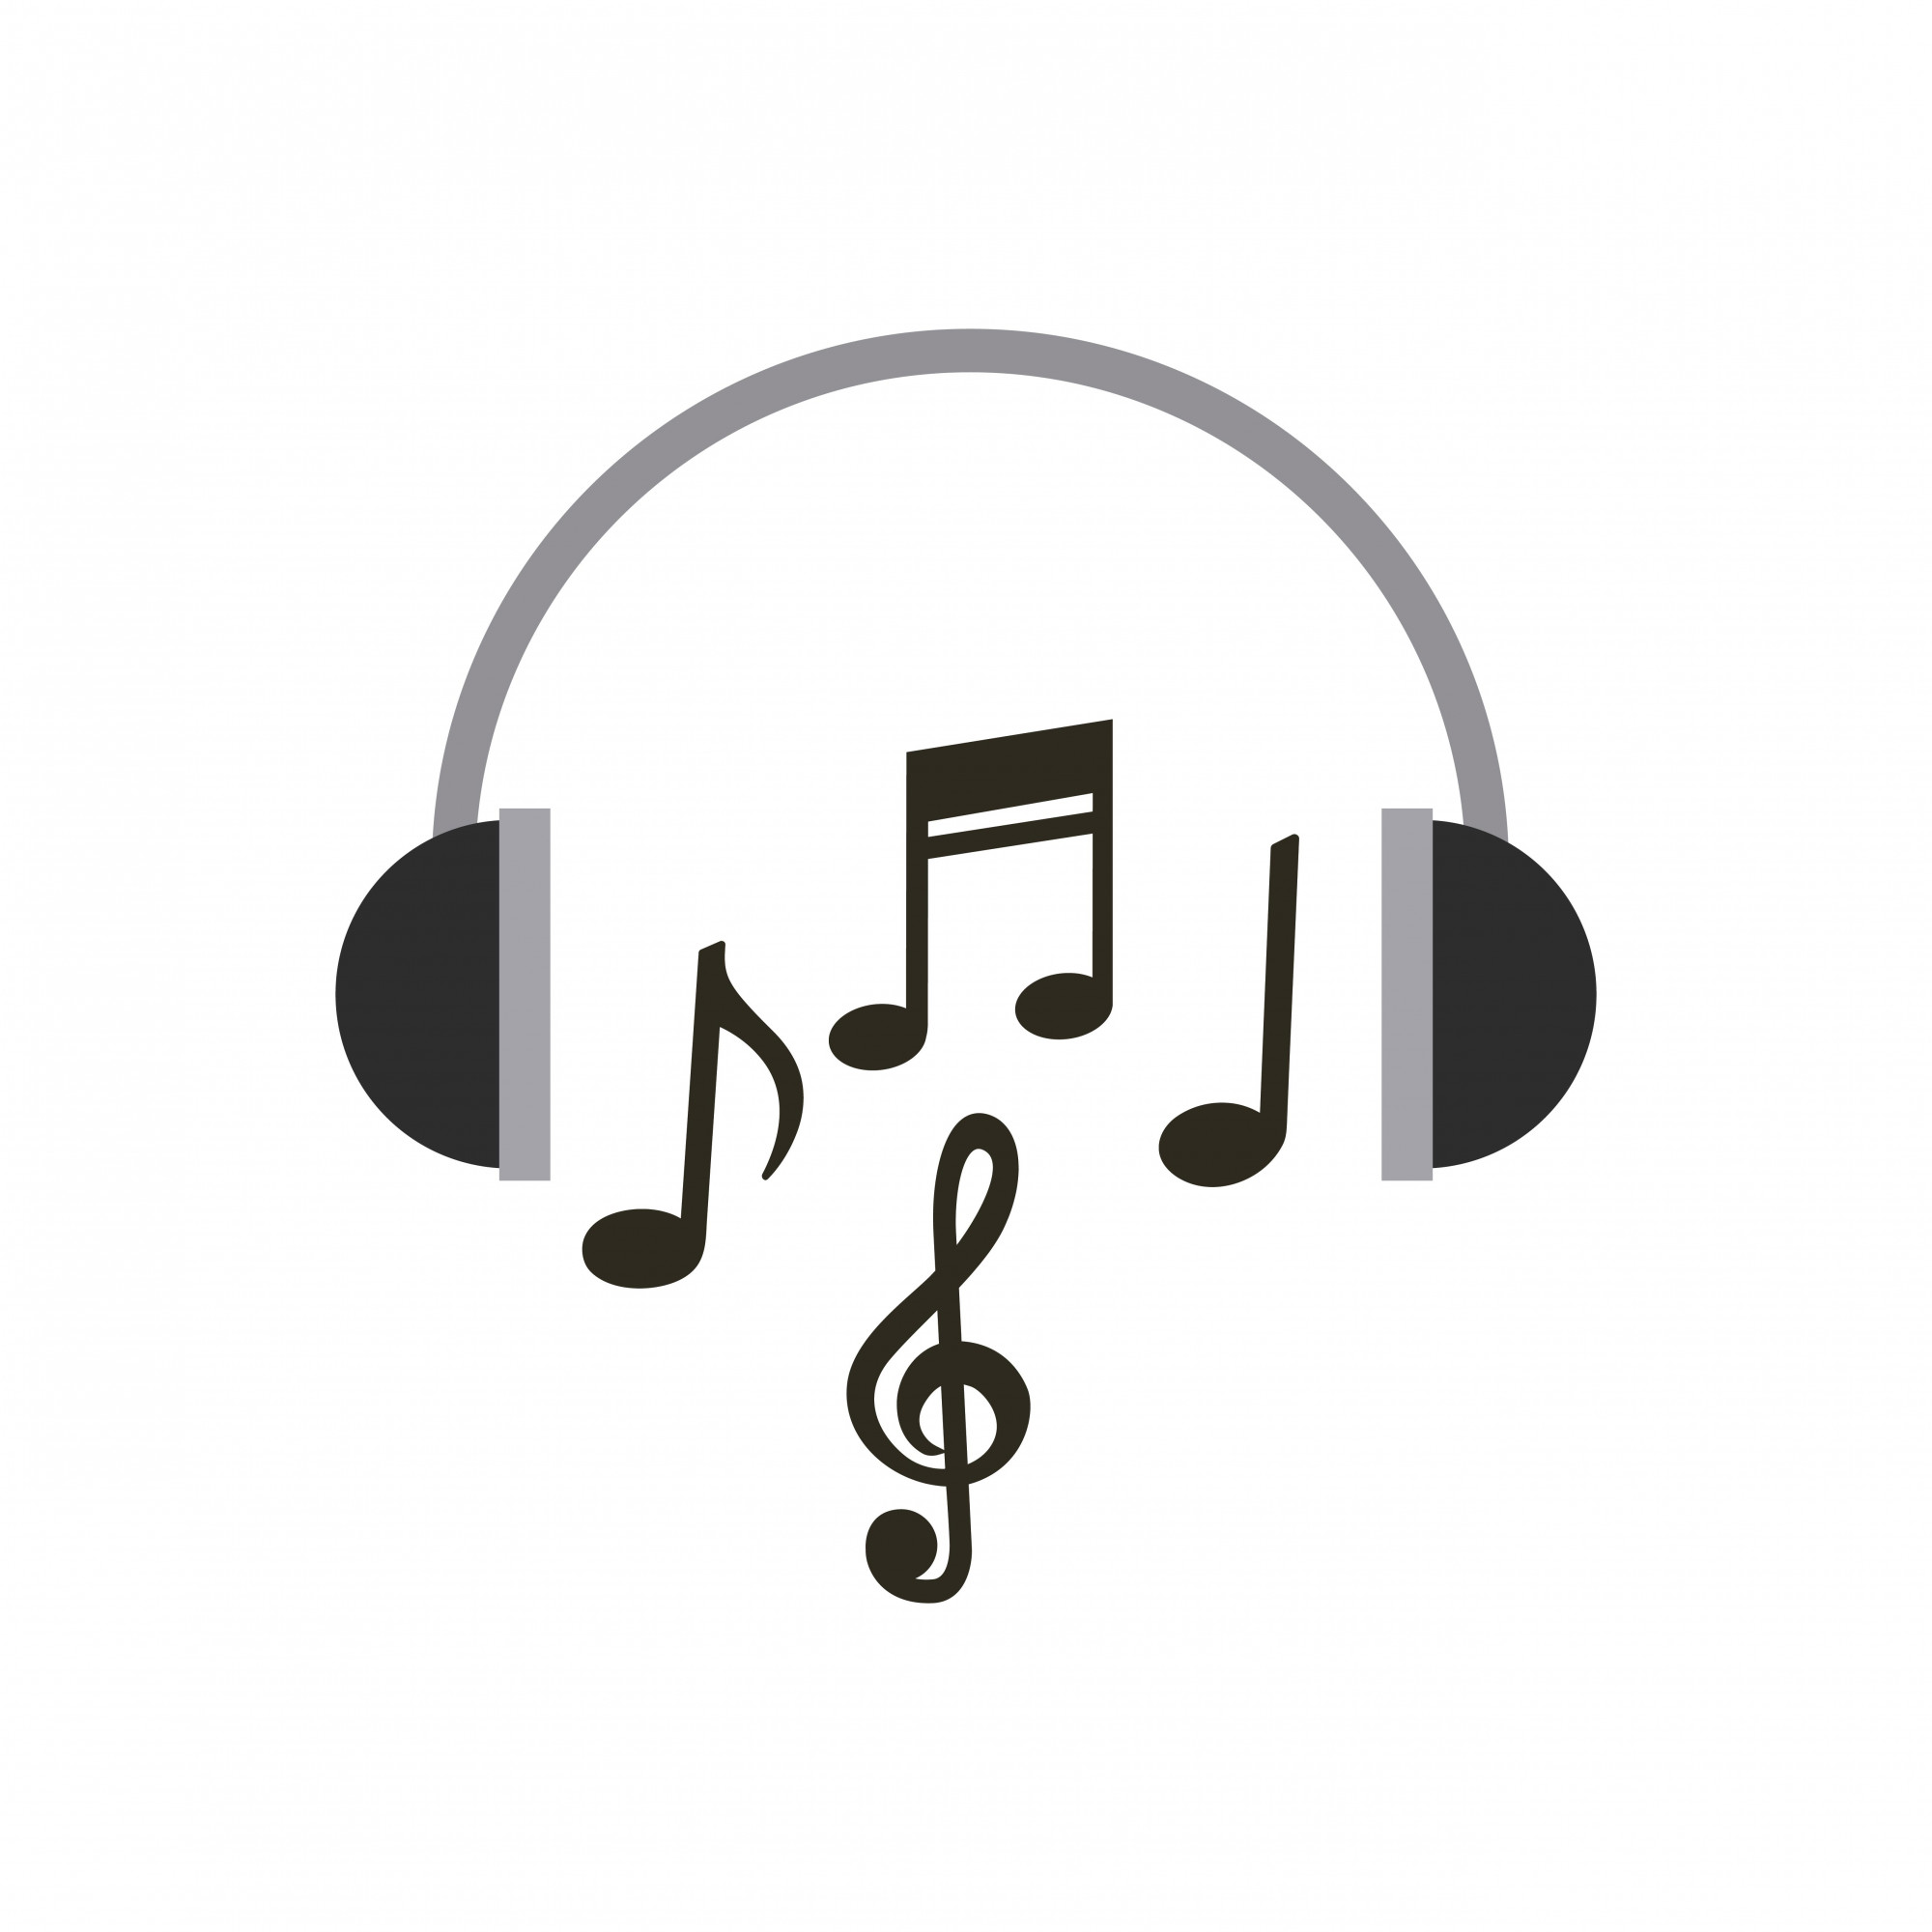 Music and techonology design